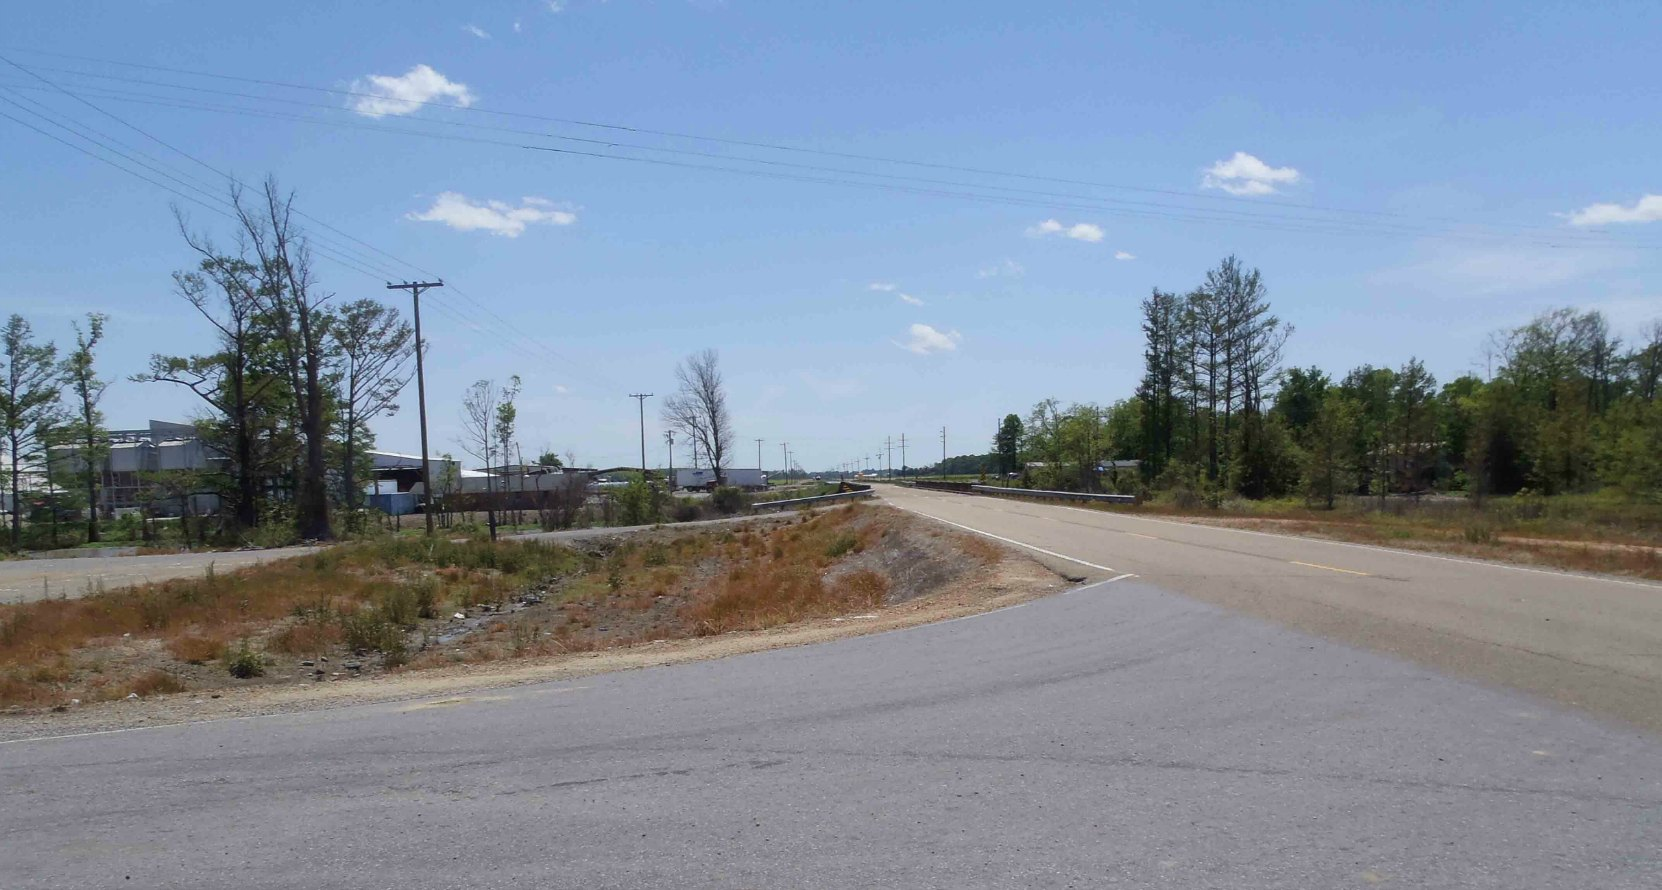 The second reputed site of Robert Johnson's poisoning in 1938, Highway 7 and Leflore County Road 512, near Quito, Leflore County, Mississippi, looking south.